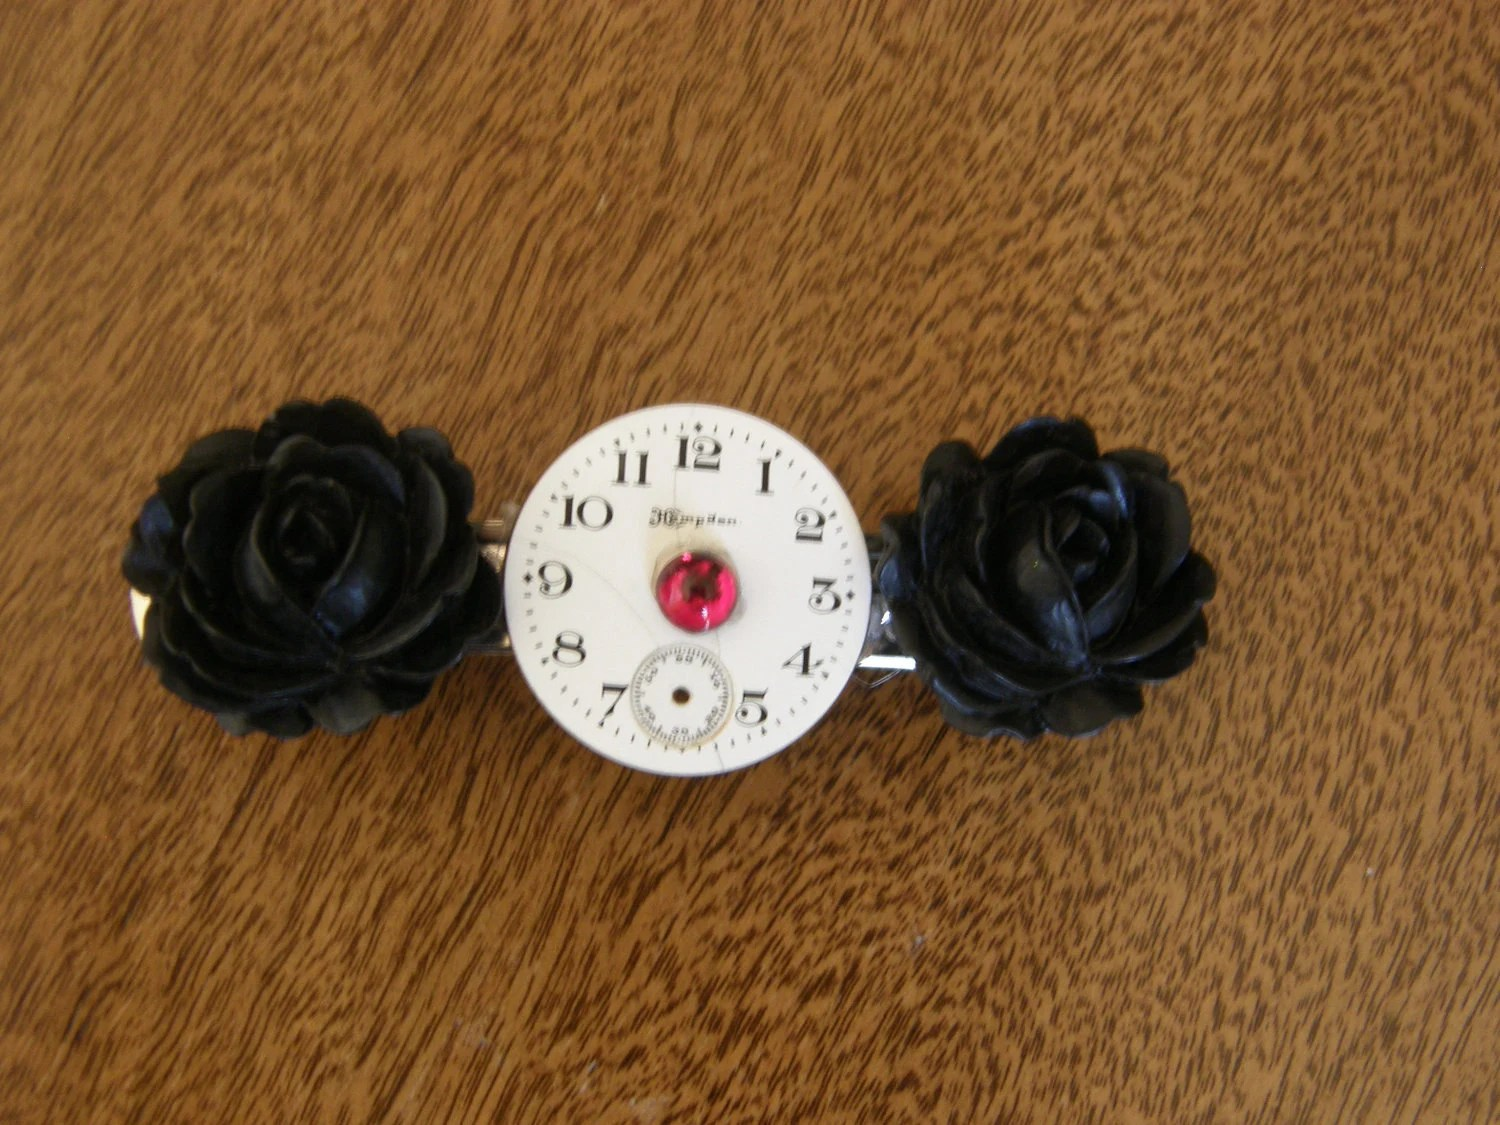 antique watch dial and black rose barrette